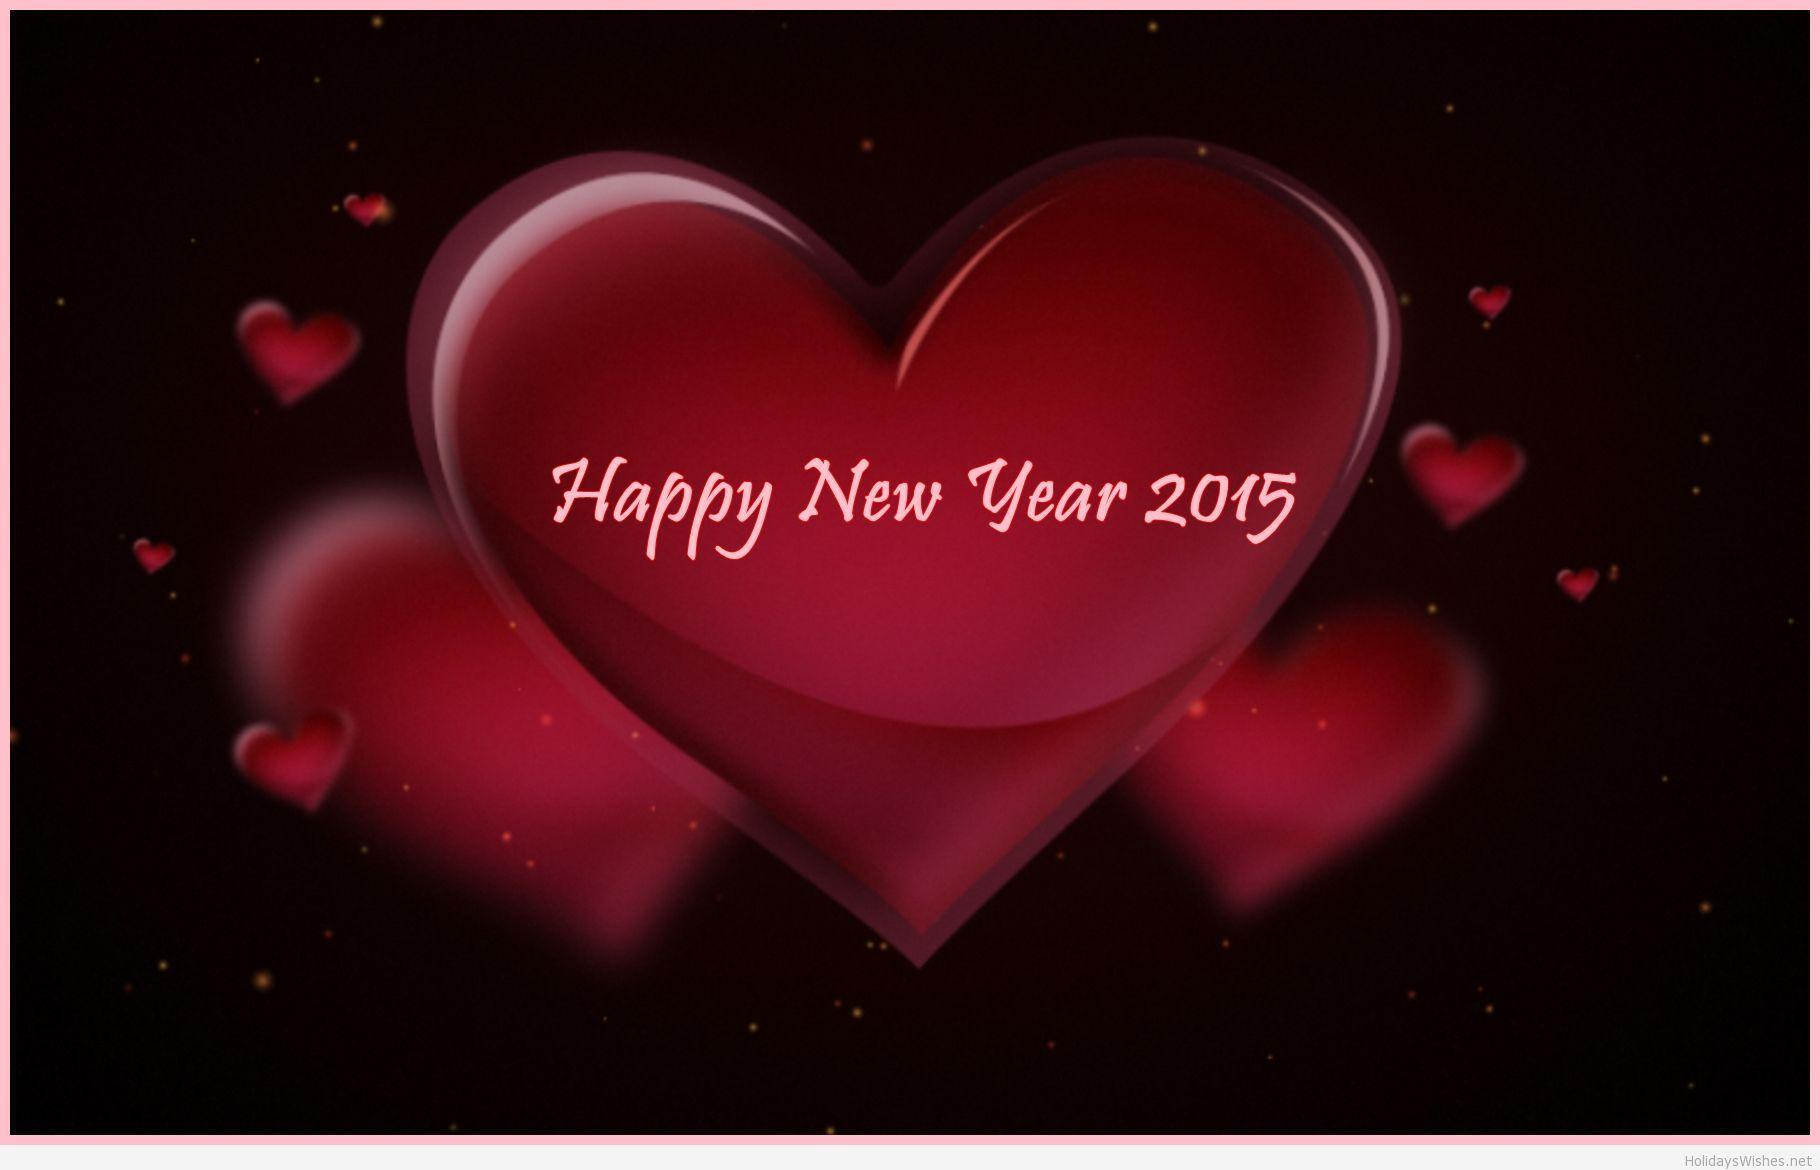 Love Wallpaper Of 2015 : Love Wallpapers 2015 - Wallpaper cave